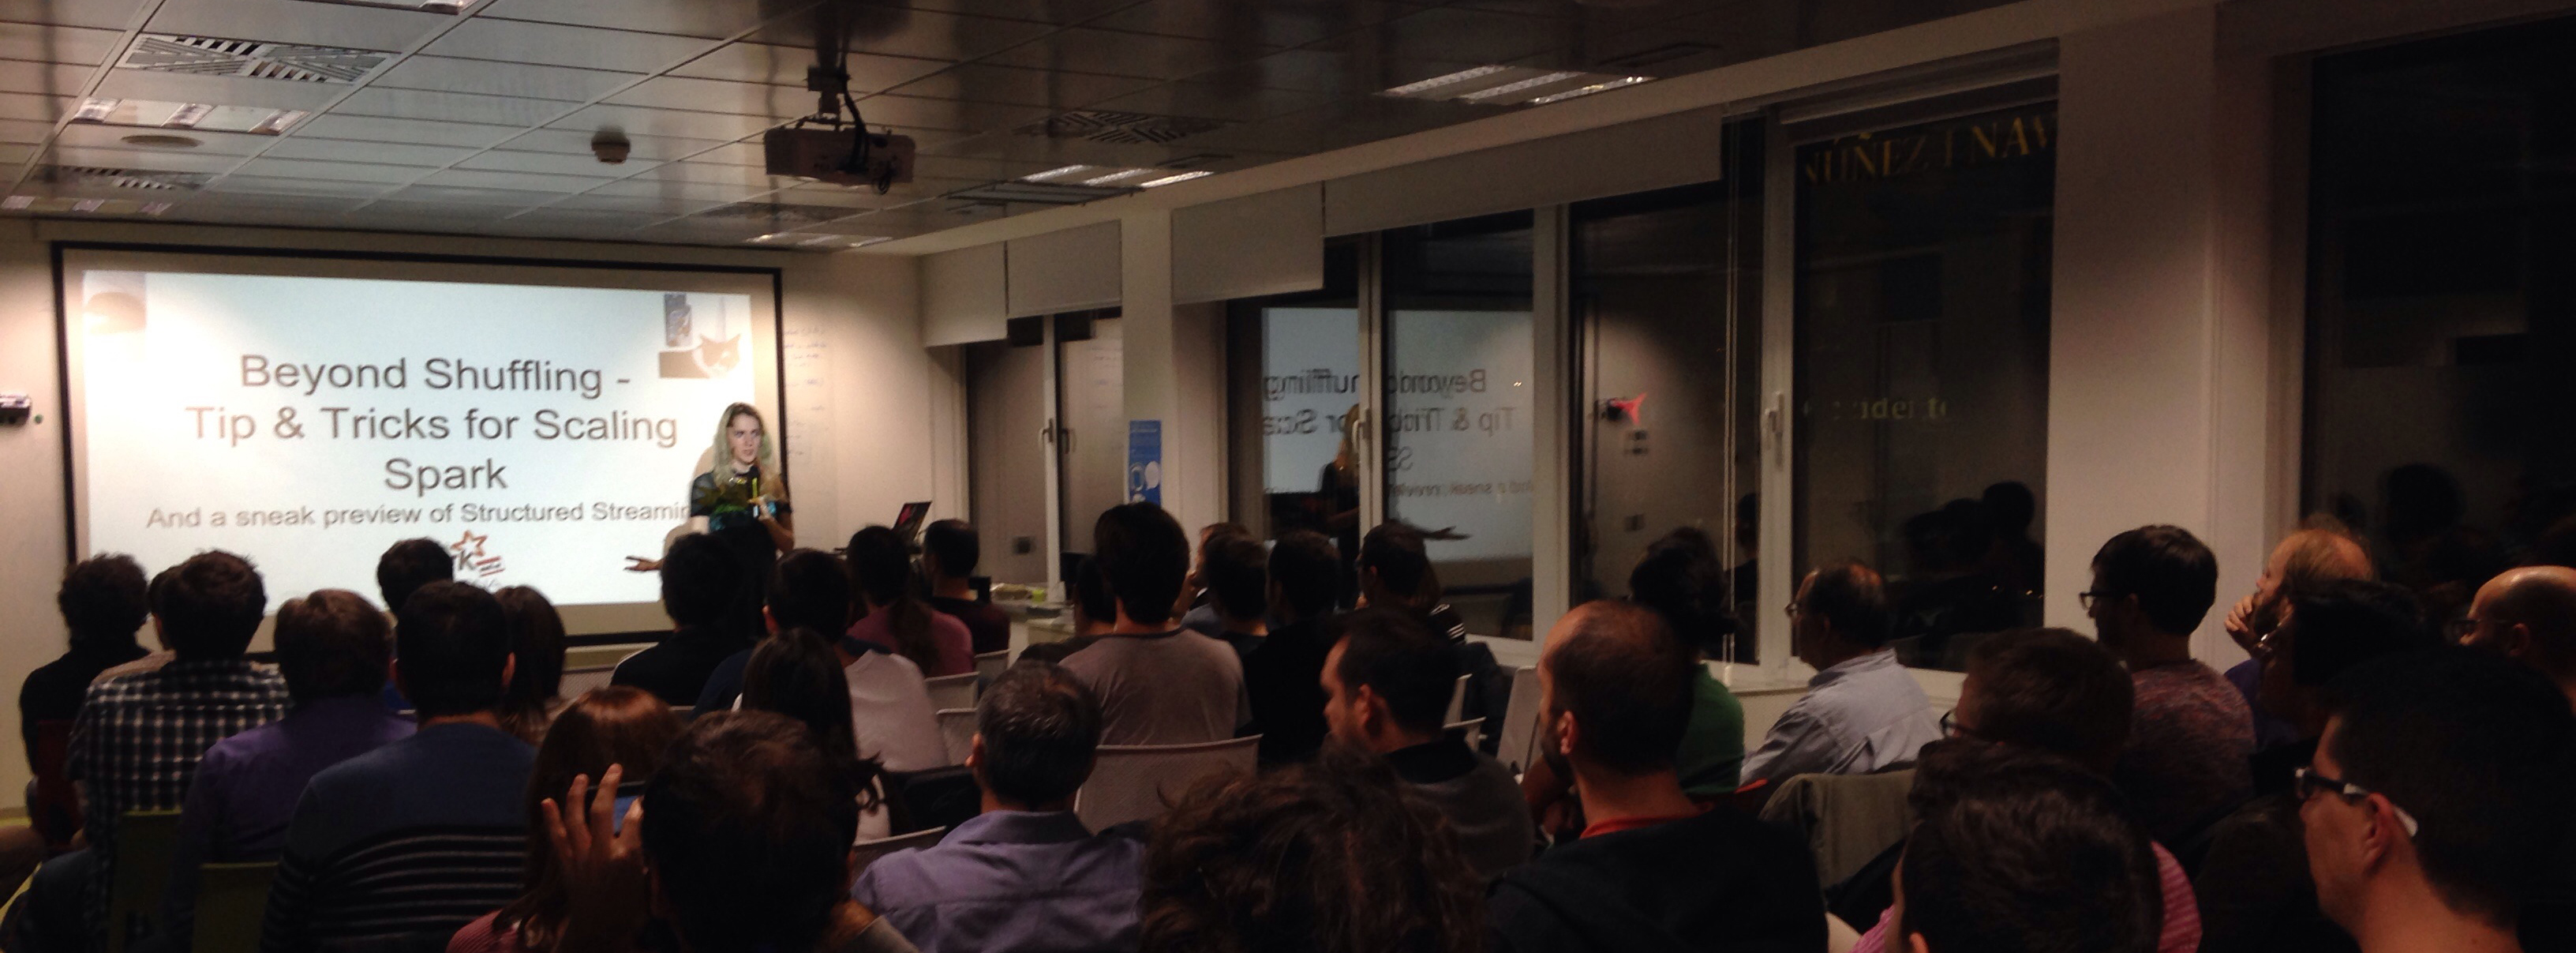 Holden Karau came to Trovit to speak about Spark and you can watch it!